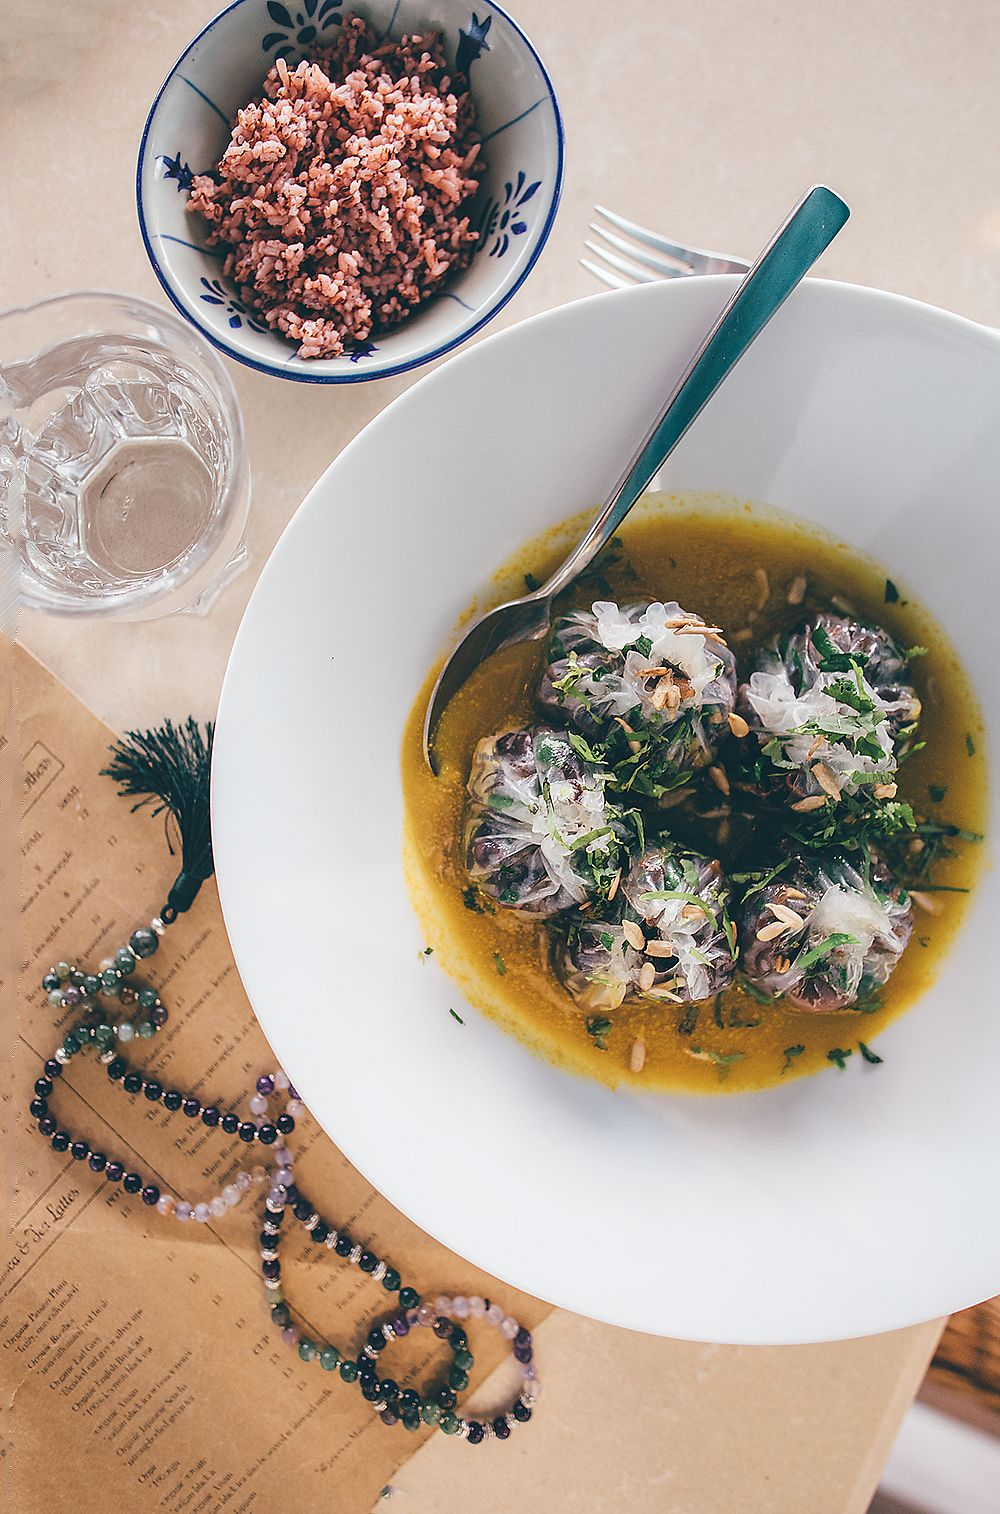 """Photo of Ashley's by LivingFood  by <a href=""""/members/profile/ManonHollingsworth"""">ManonHollingsworth</a> <br/>Vegetable dumplings in pumpkin puree  <br/> February 19, 2018  - <a href='/contact/abuse/image/56254/361117'>Report</a>"""